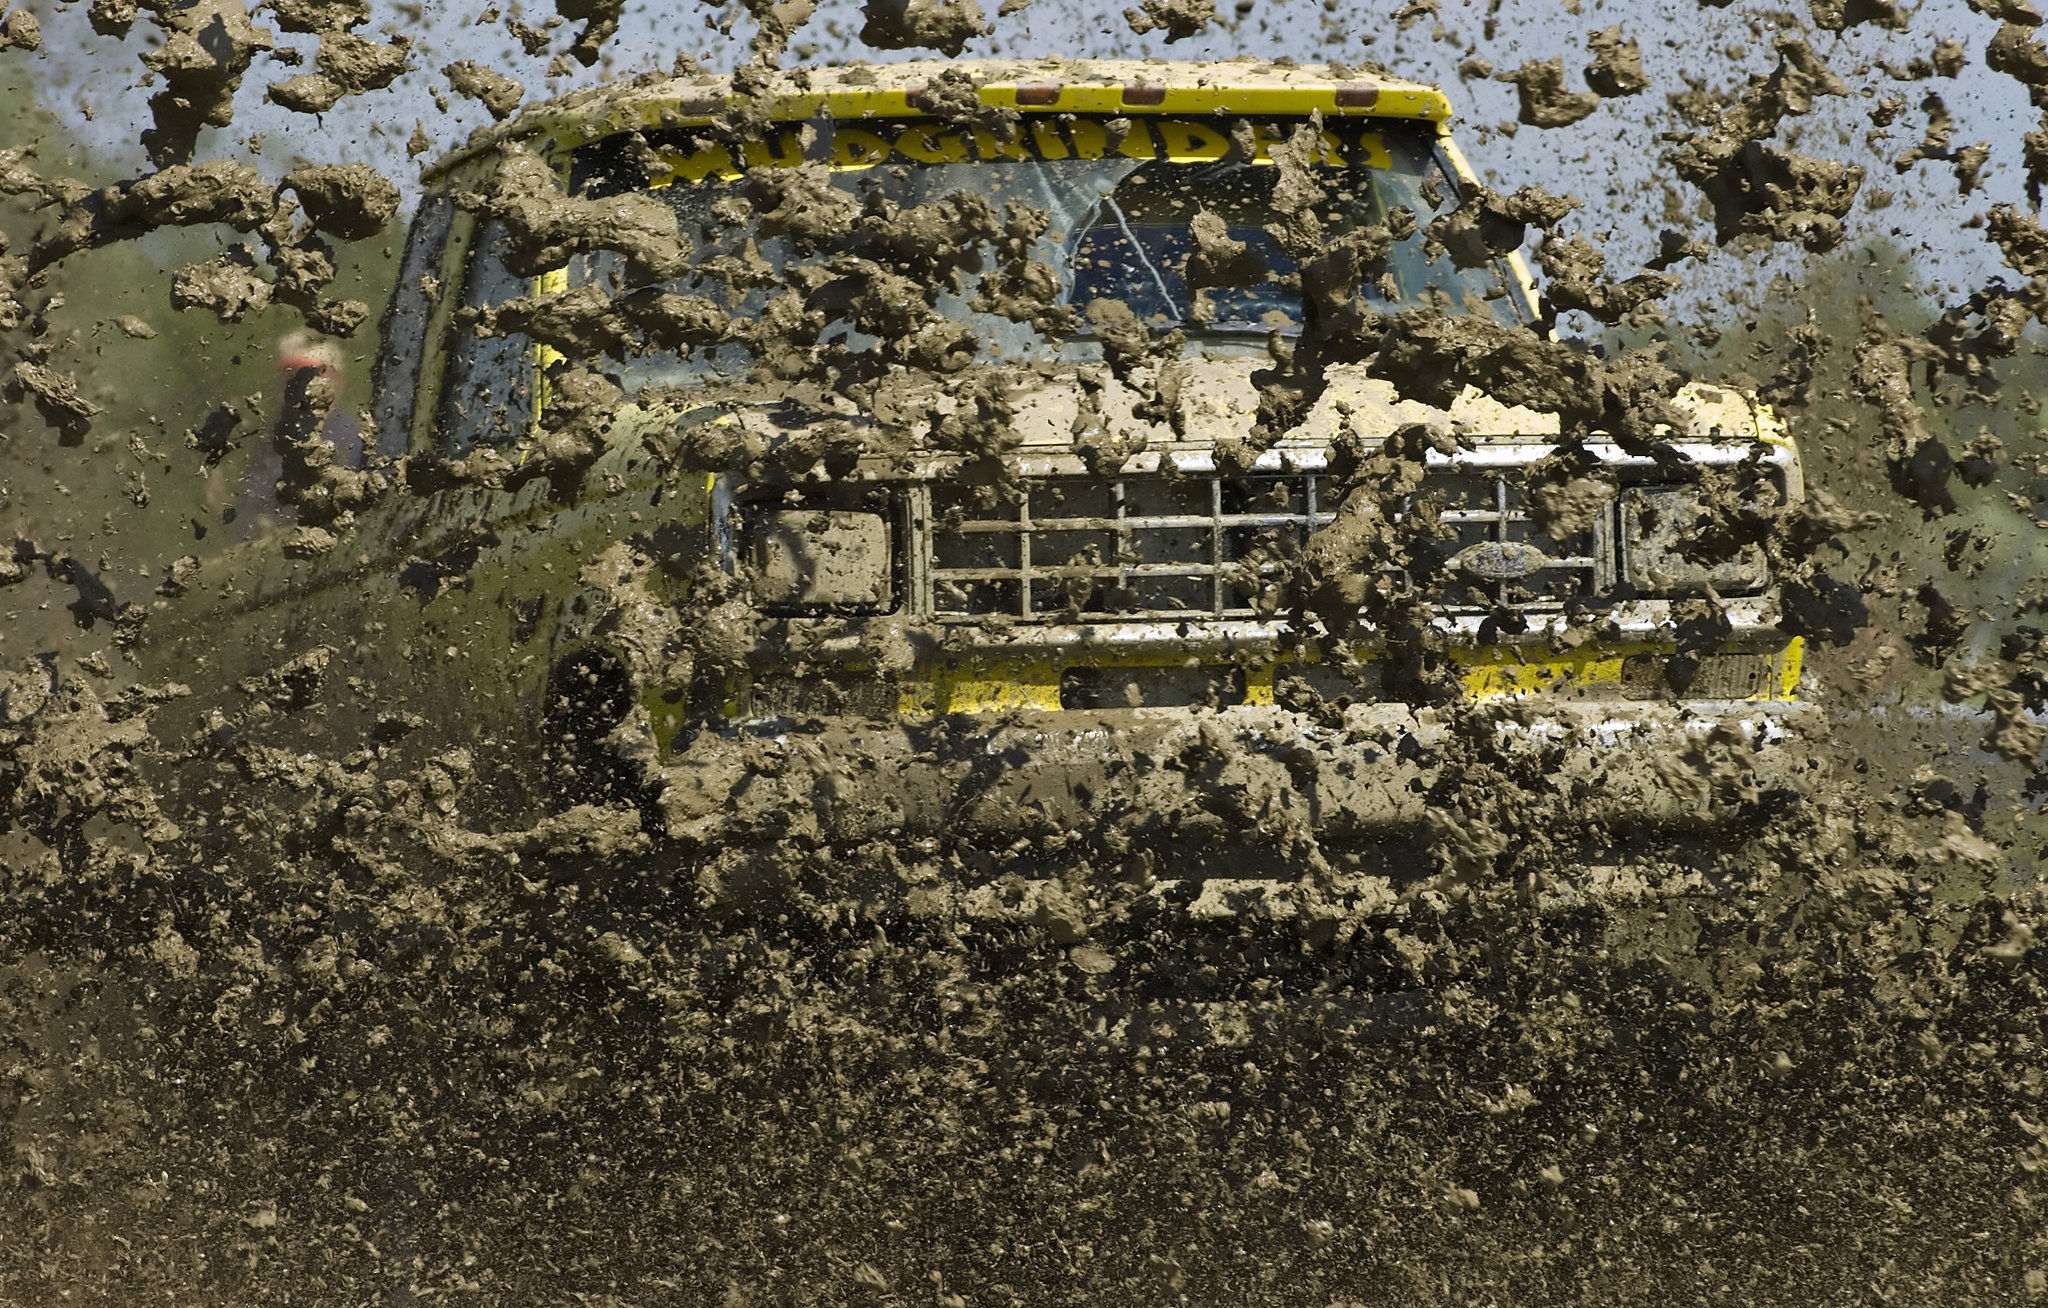 Free Download Mud Bogging 4x4 Offroad Race Racing Monster Truck Race Racing Pickup 2048x1308 For Your Desktop Mobile Tablet Explore 49 Mudding Wallpaper Mud Truck Wallpapers For Desktop Drywall